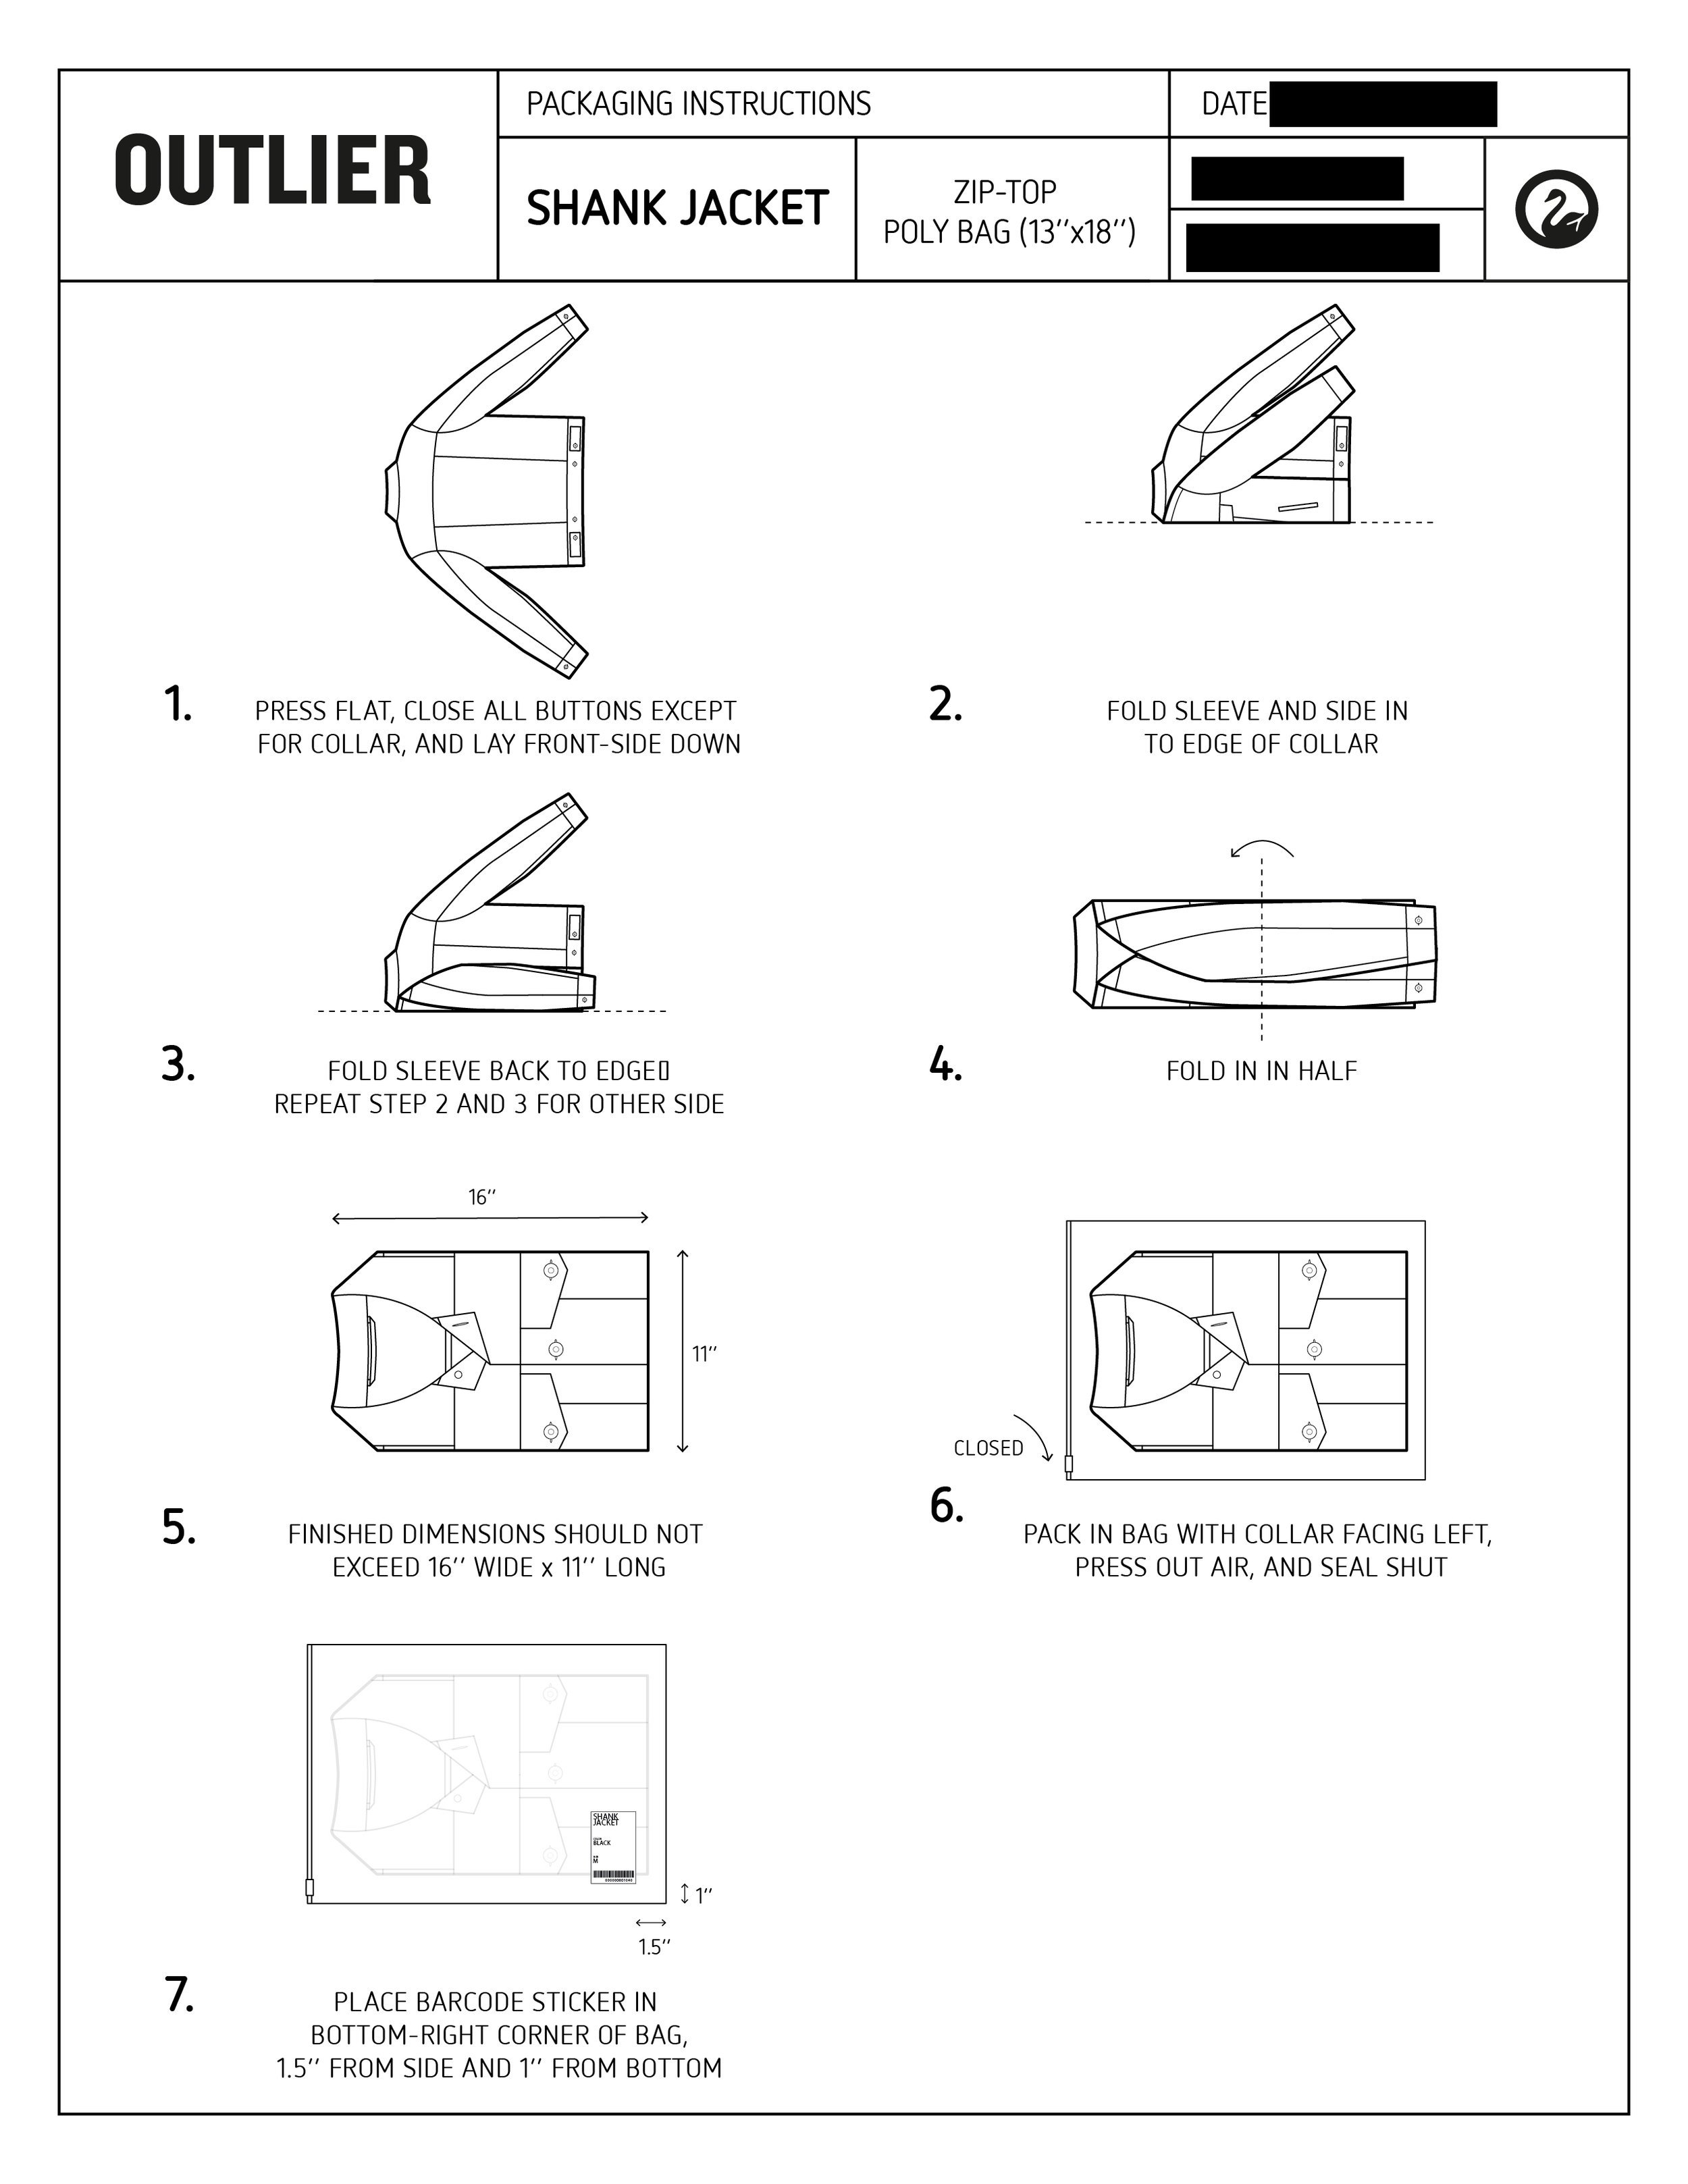 PACKING_INSTRUCTIONS_SHANK_JACKET-01 copy.jpg